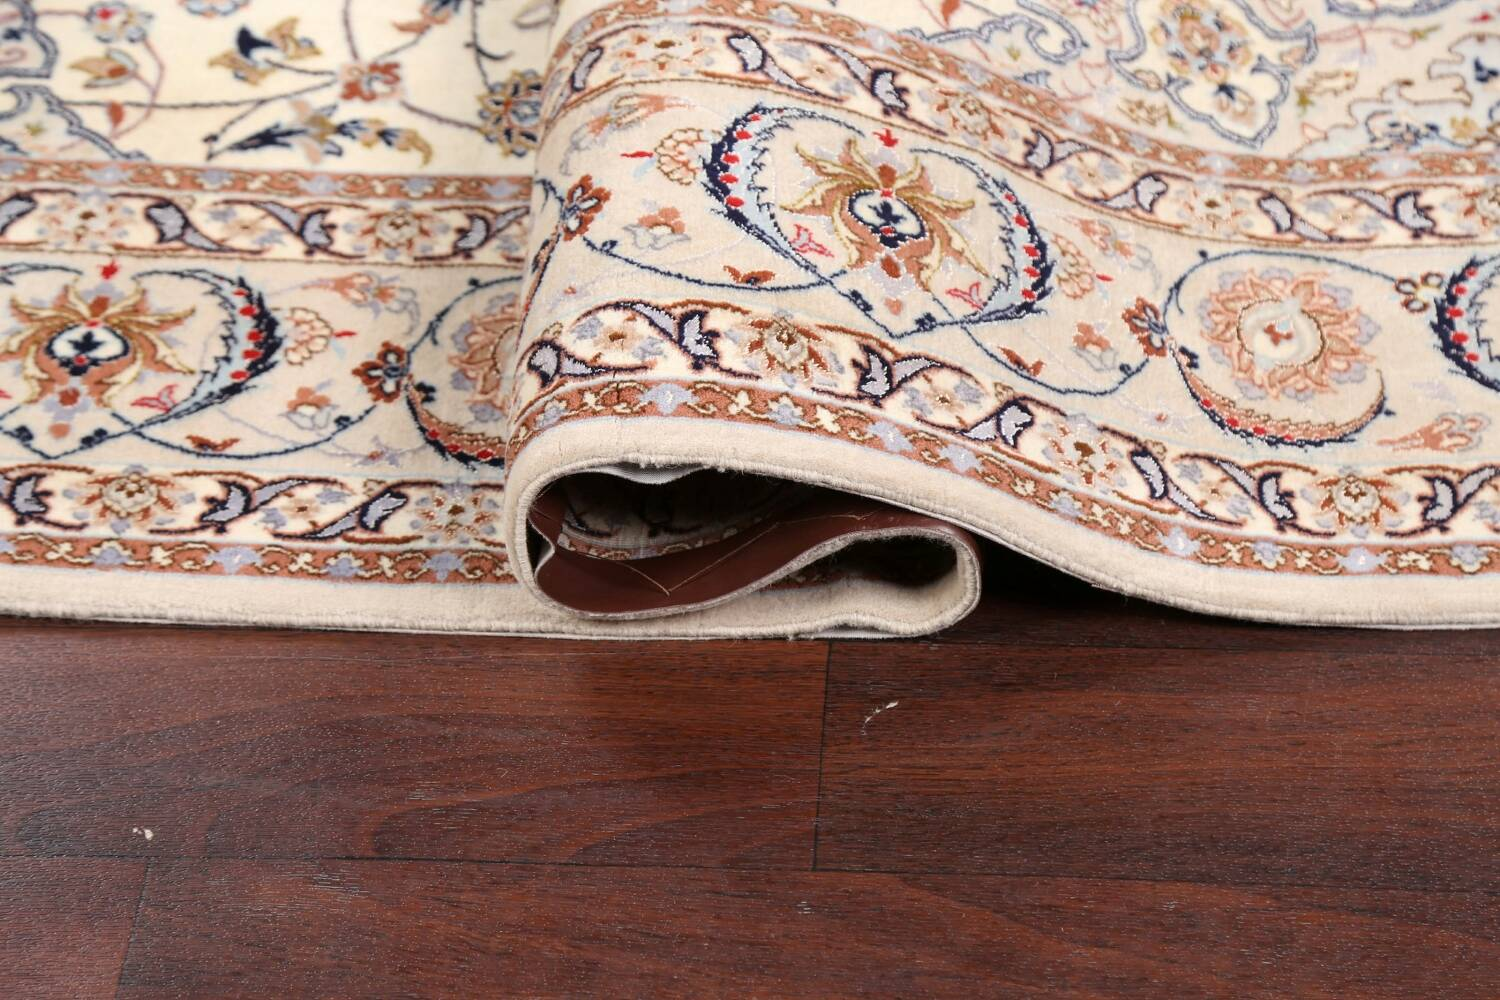 100% Vegetable Dye Floral Isfahan Persian Area Rug 5x8 image 11